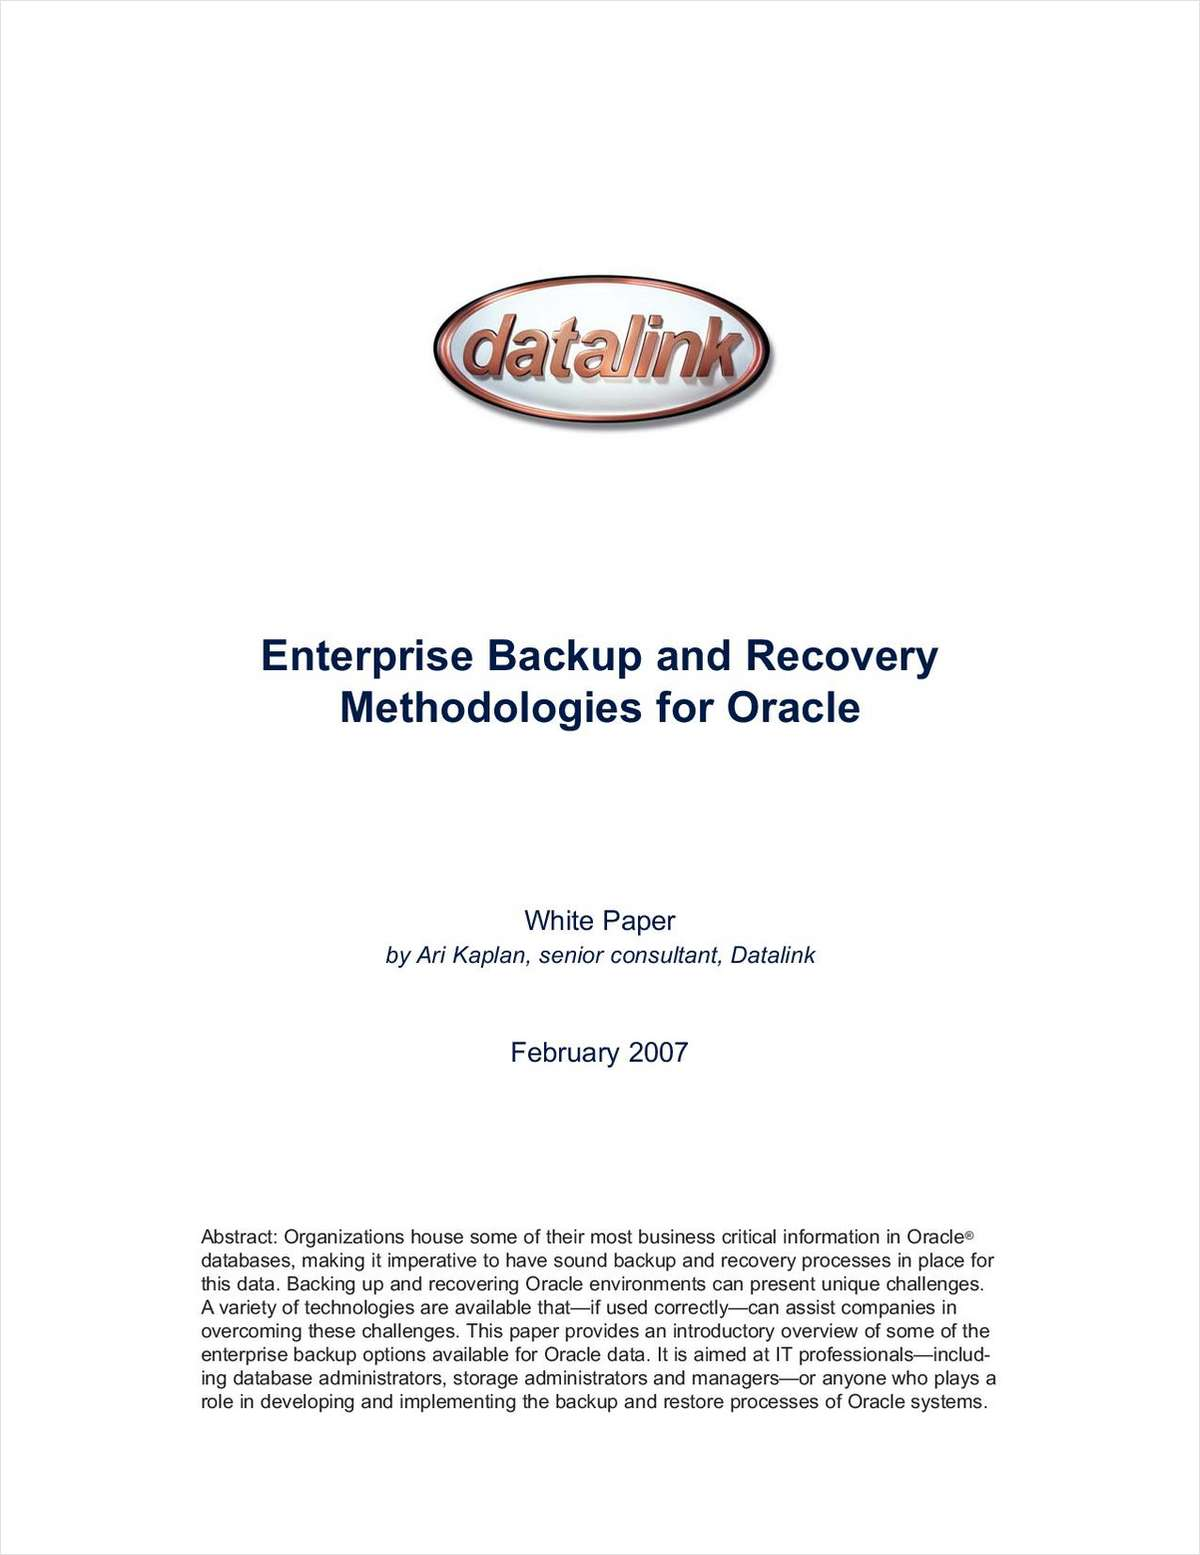 Enterprise Backup and Recovery Methodologies for Oracle